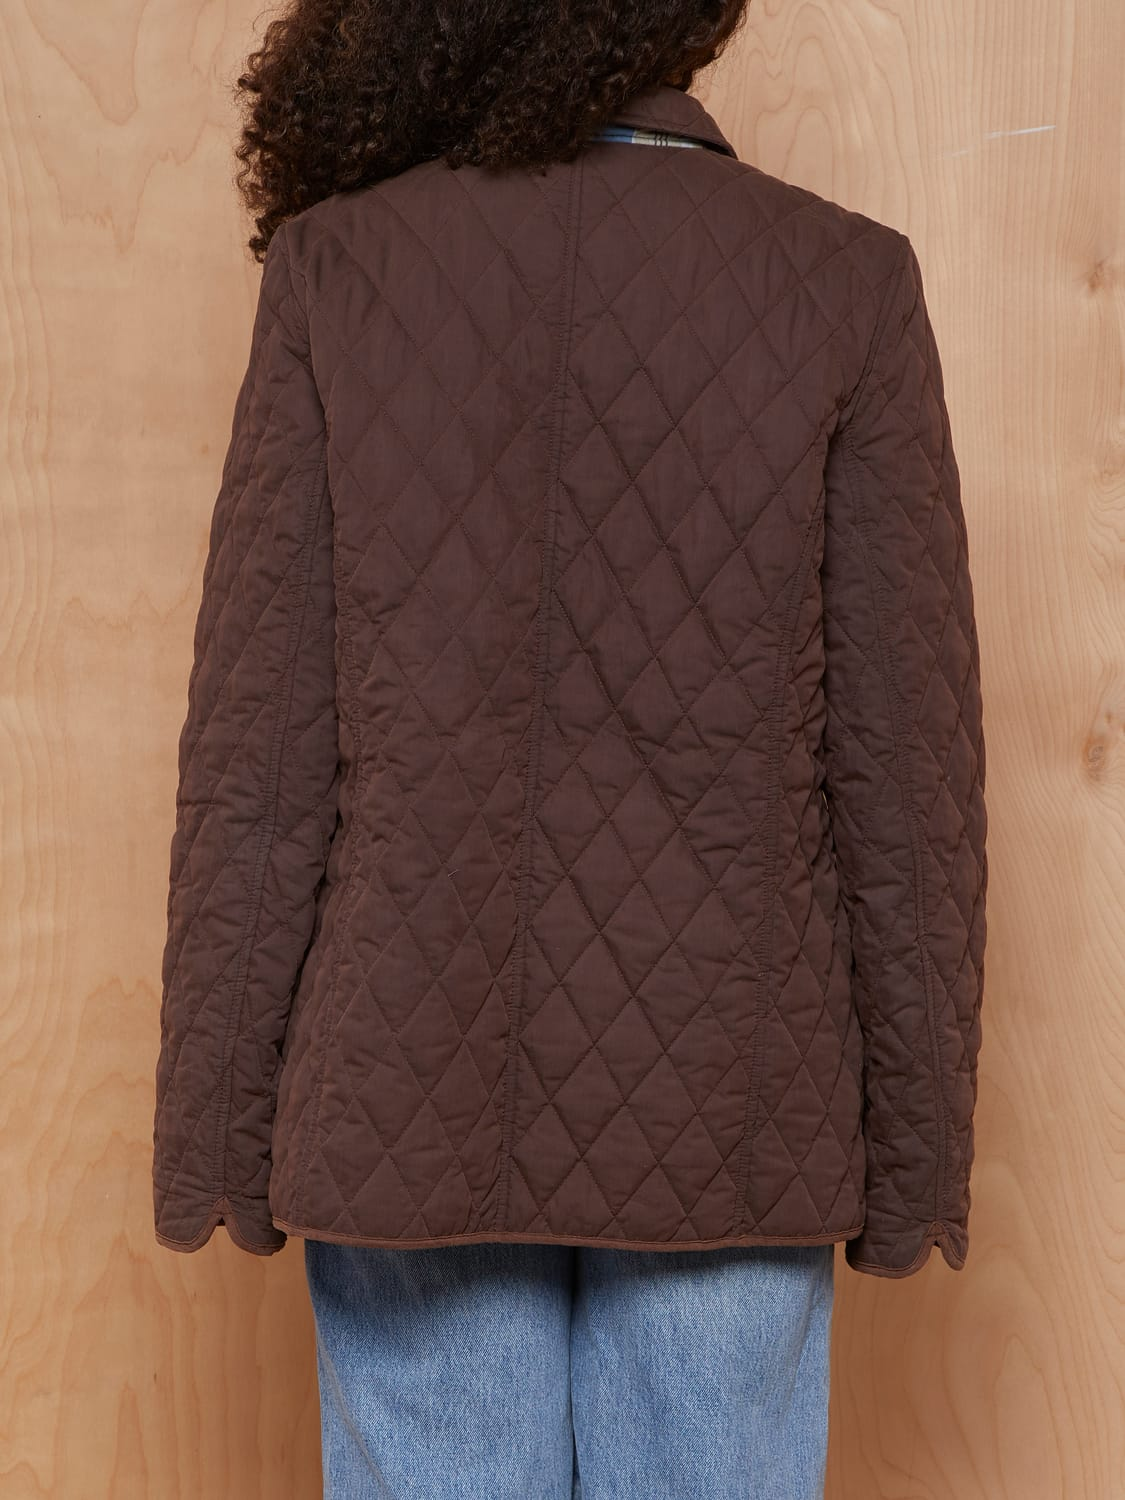 L.L. Bean Quilted Jacket